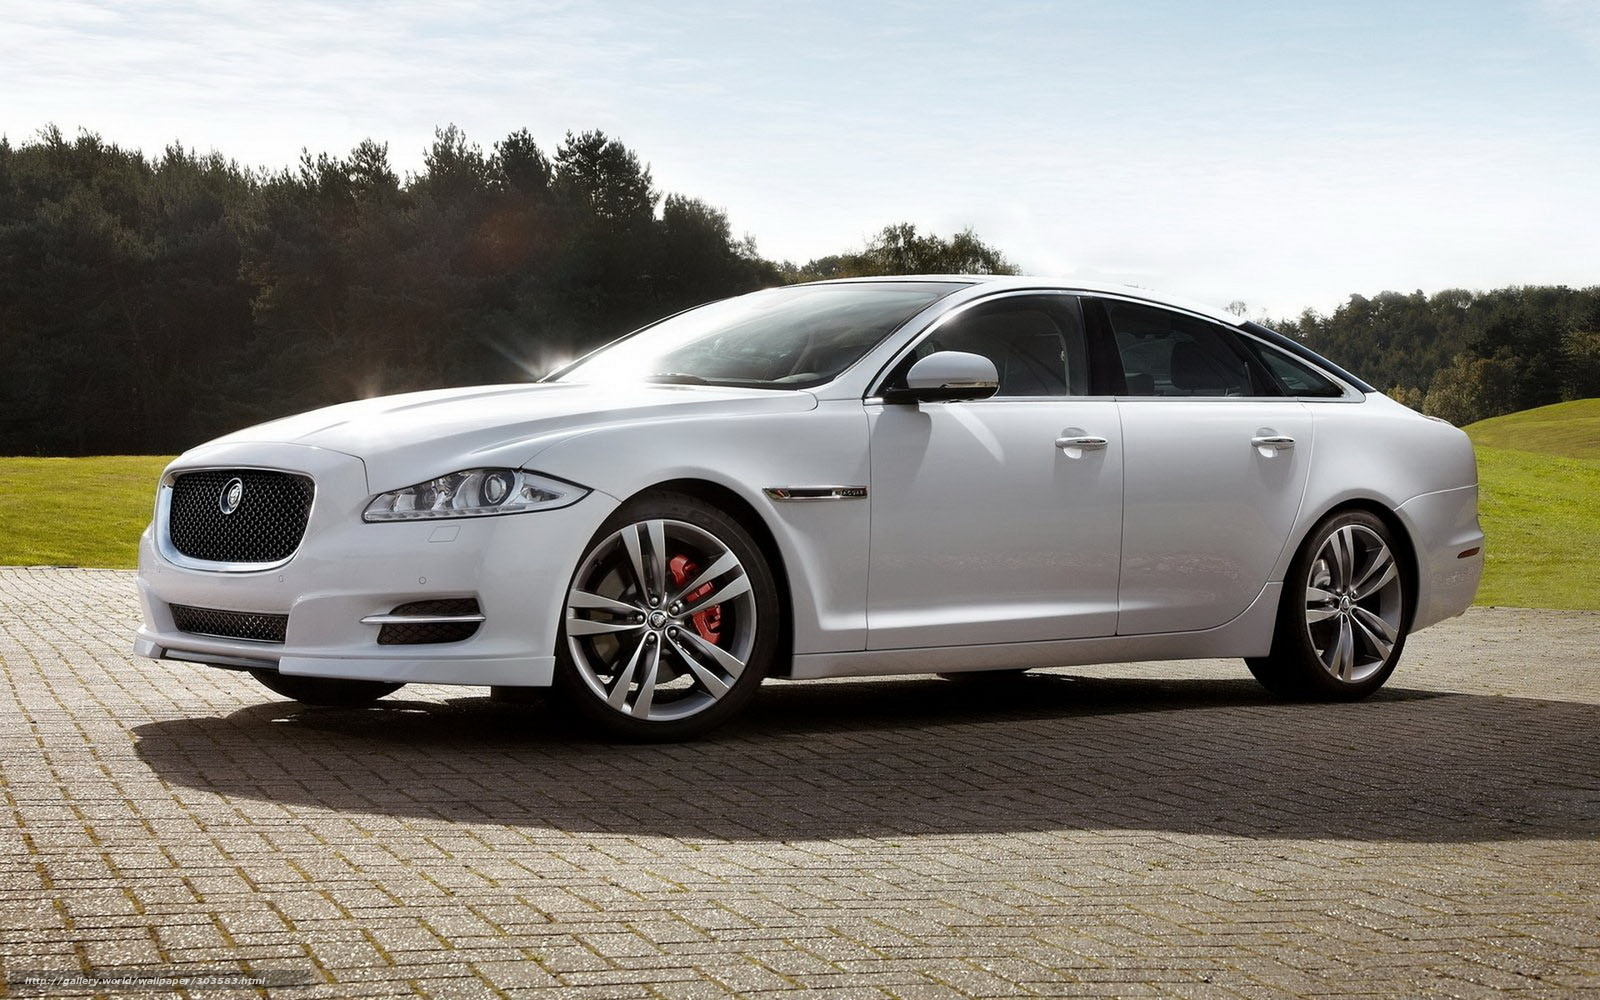 Download Wallpaper Jaguar Car Sky Cars Free Desktop Wallpaper In